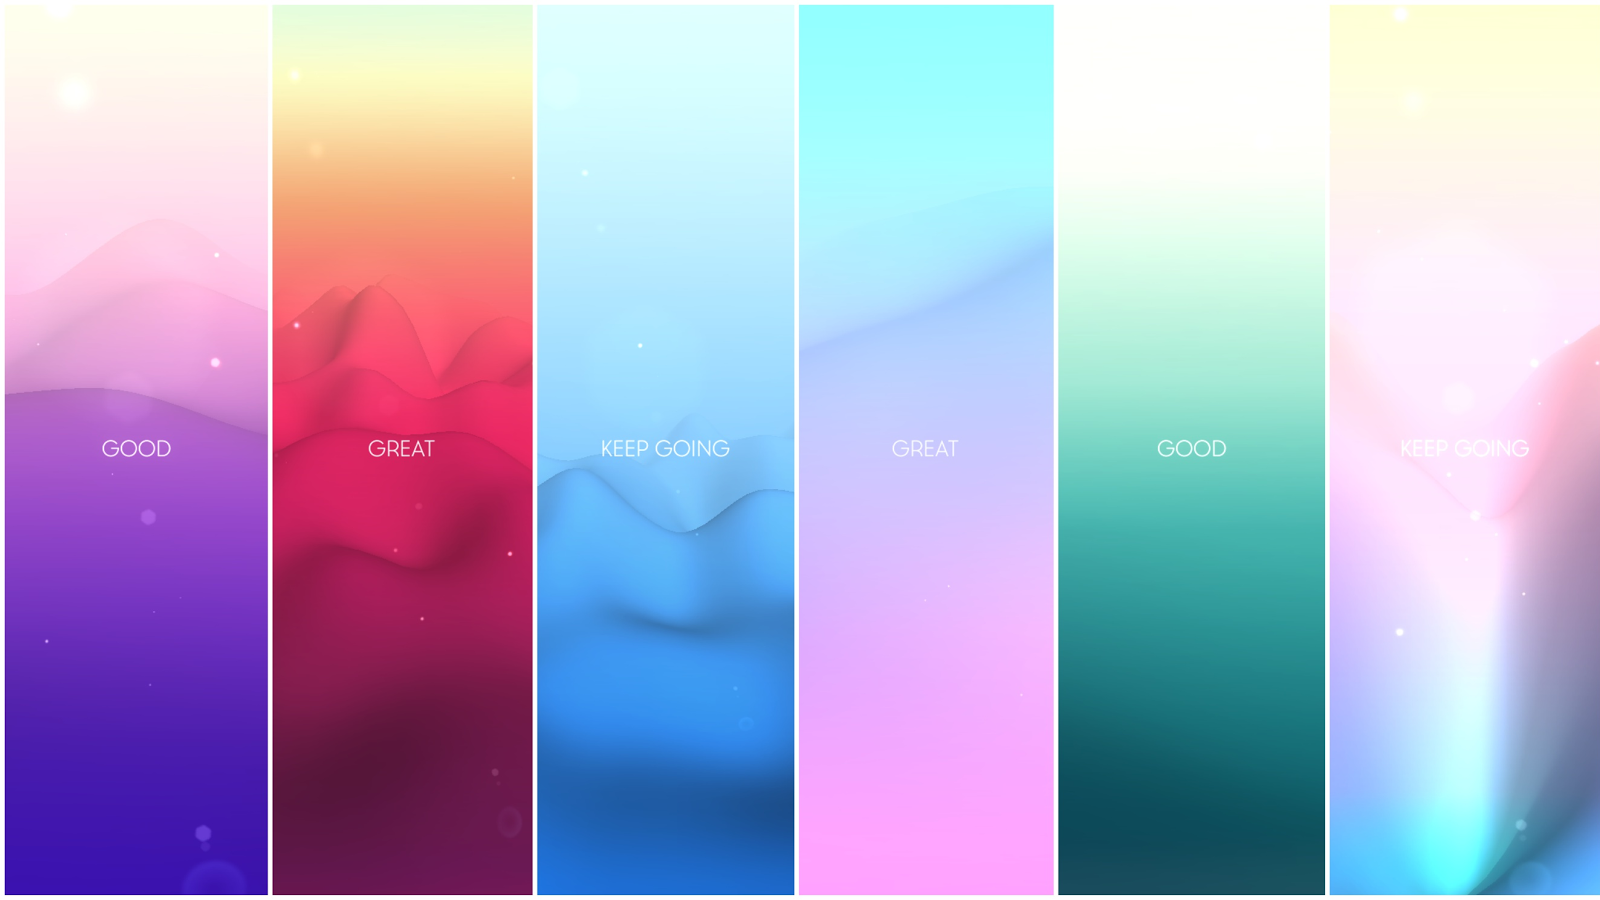 Sway Is A Beautiful Meditation App That Doesn't Tell You What To Think